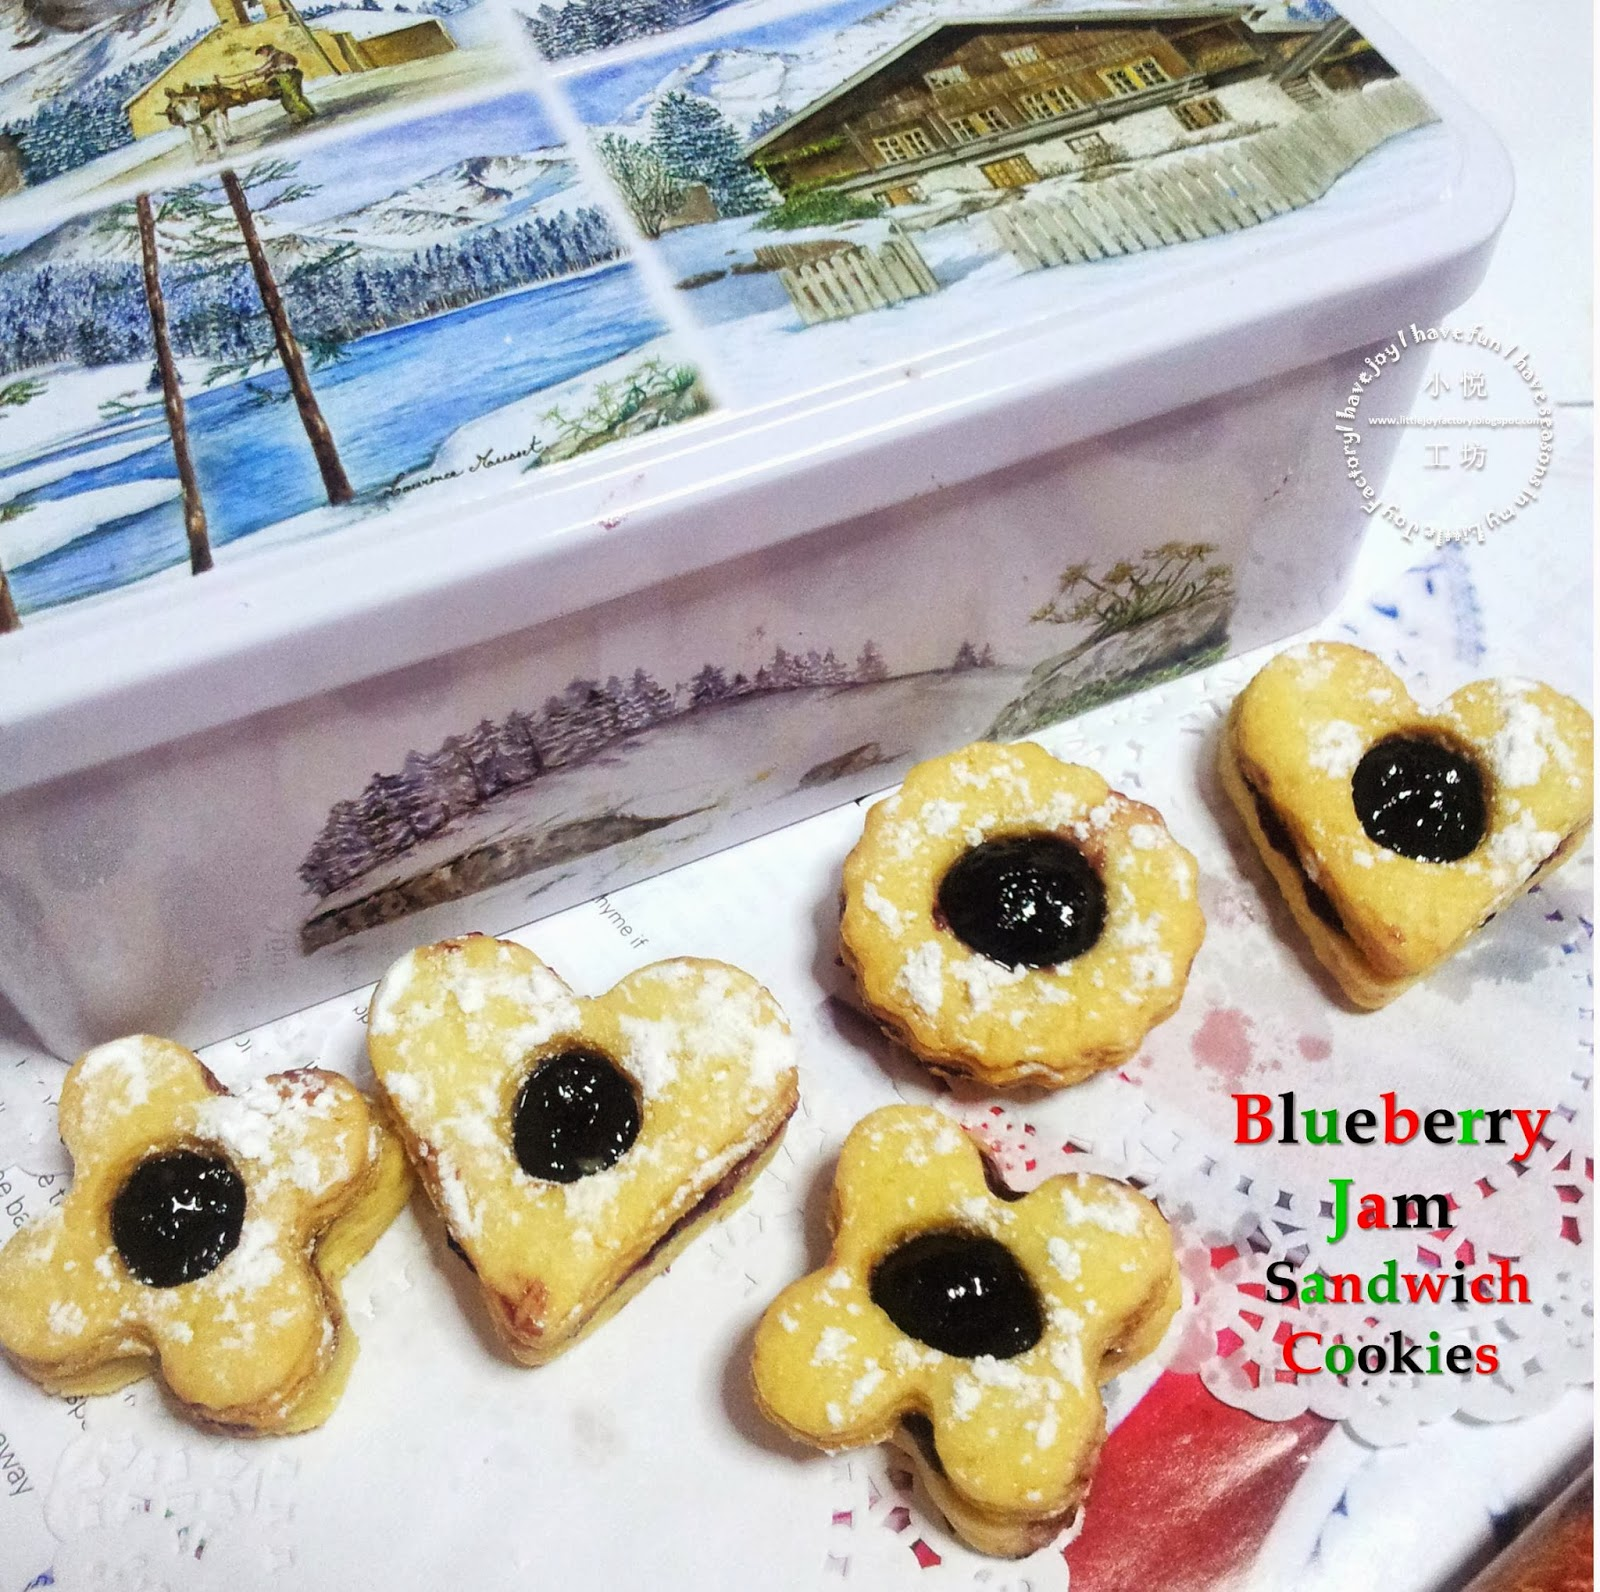 Little Joy Factory: Fill the Tins with Blueberry Jam Sandwich Cookies